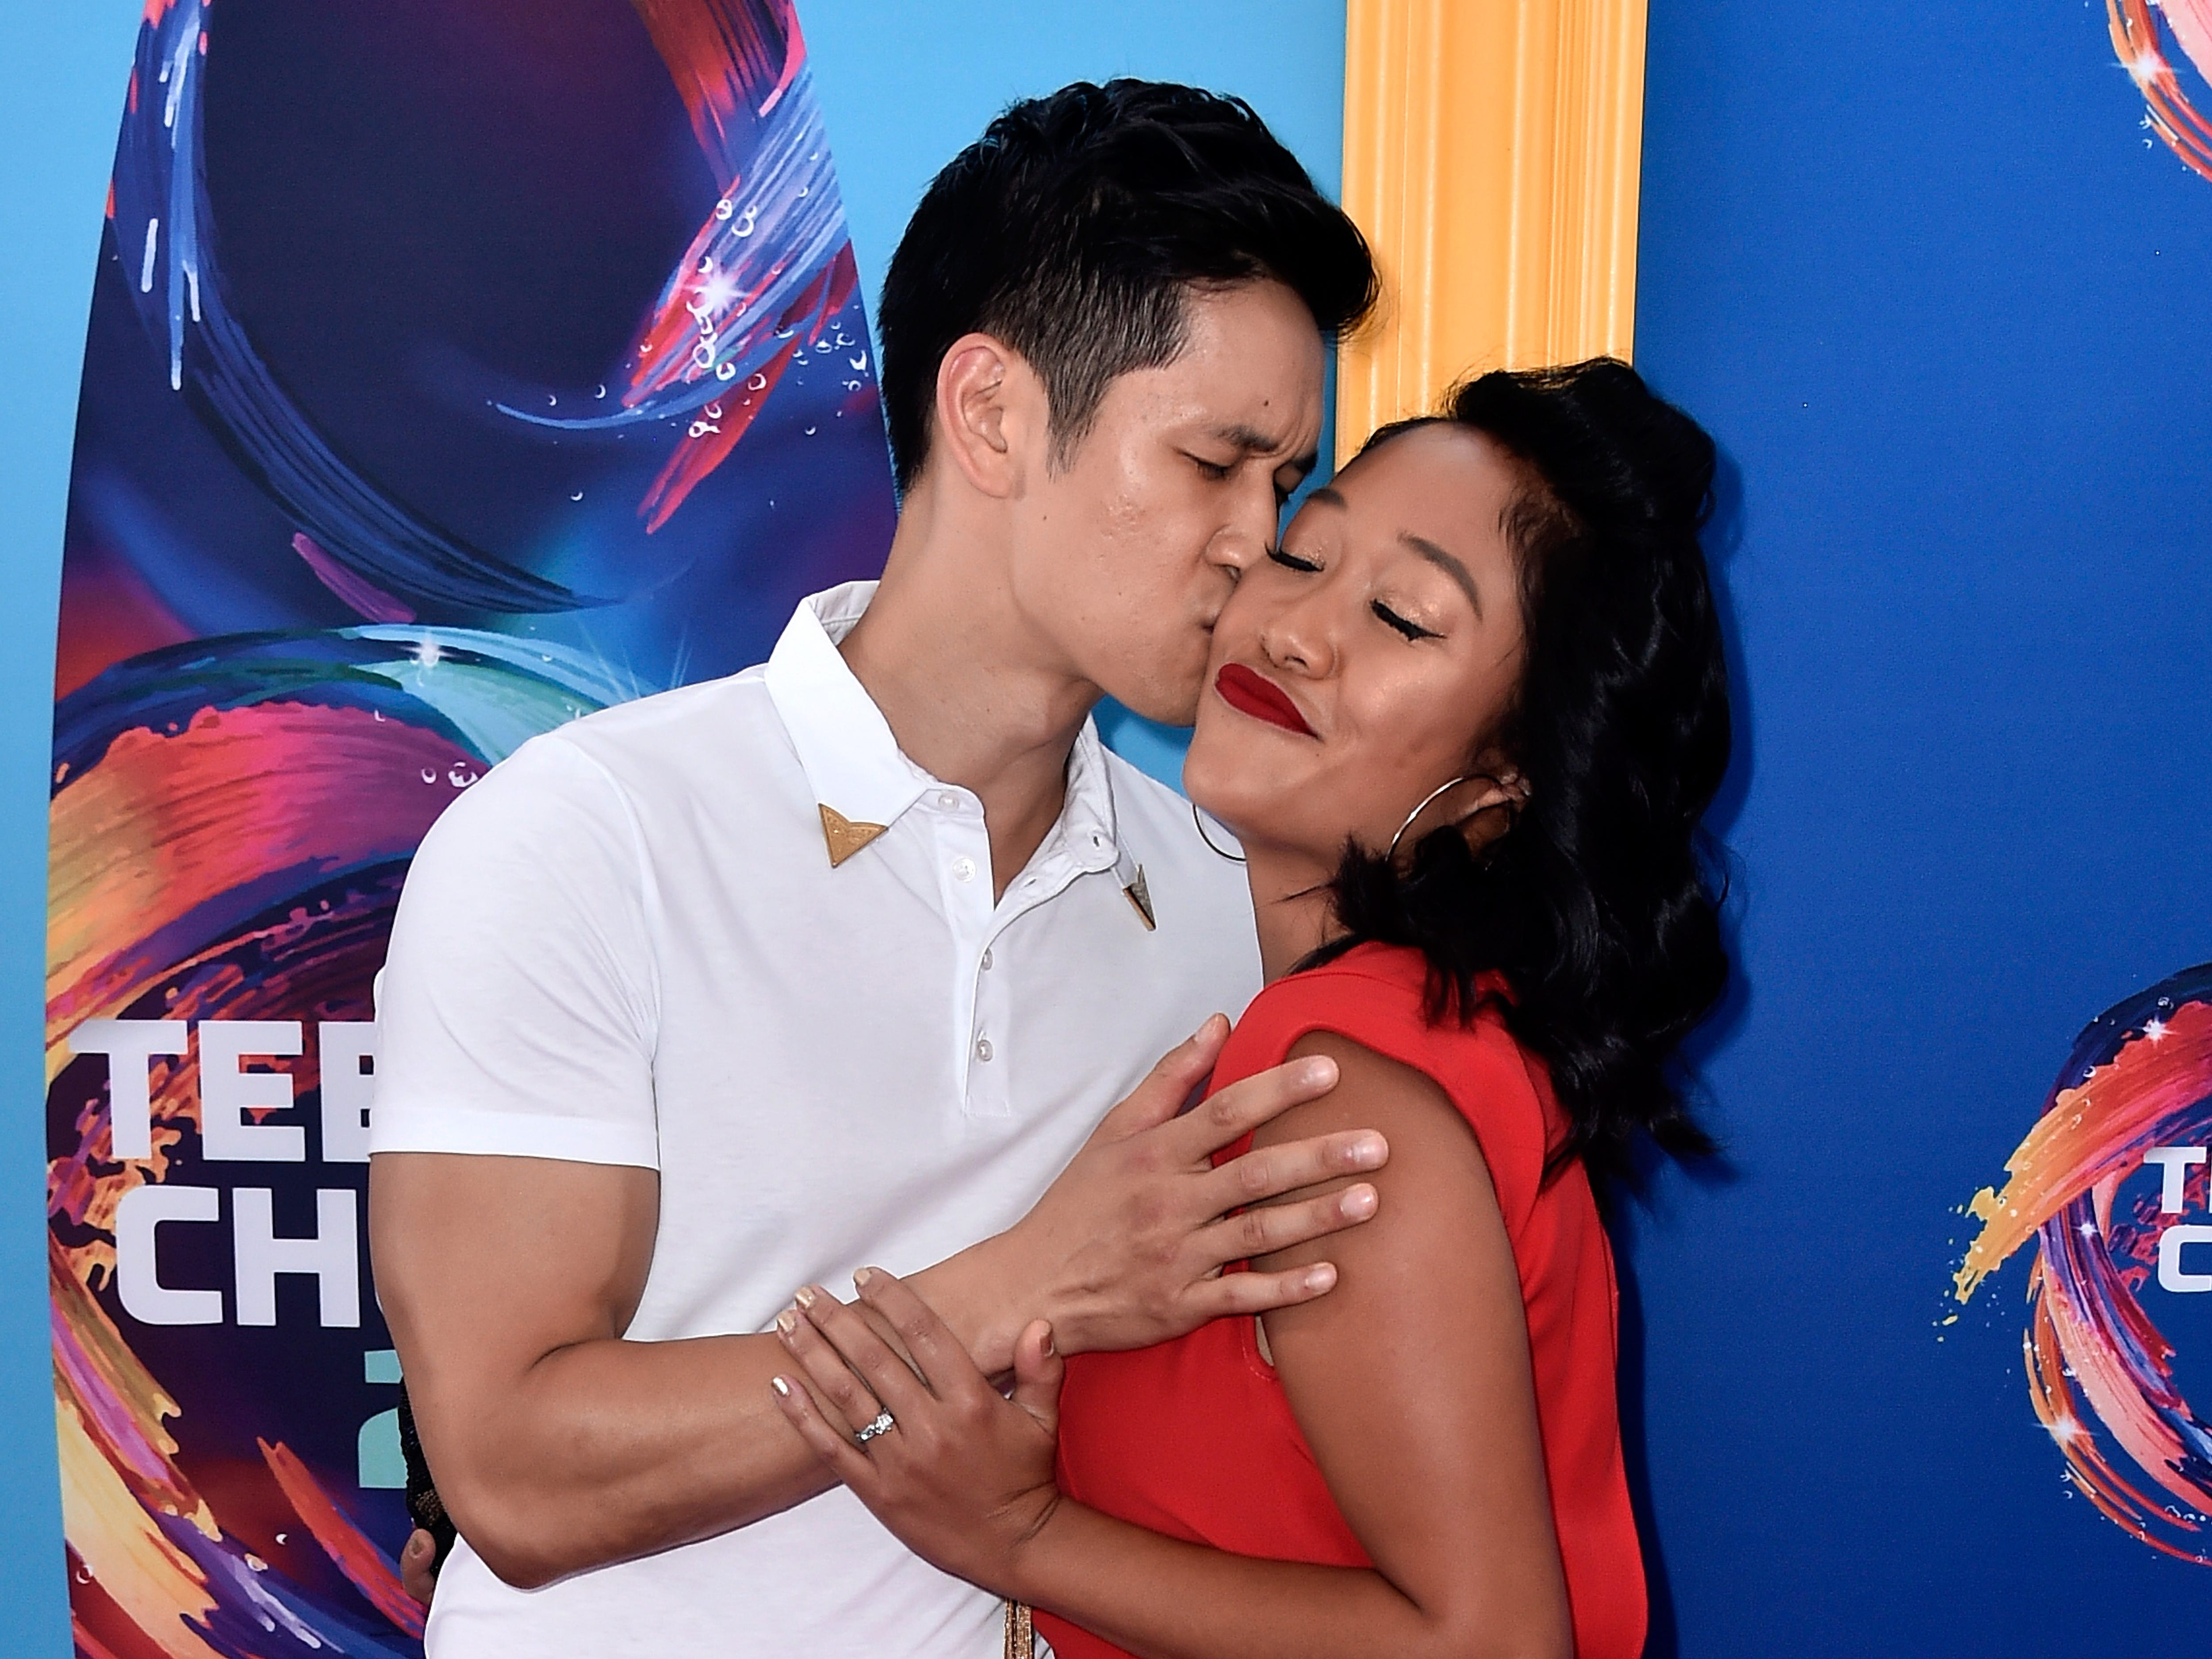 INGLEWOOD, CA - AUGUST 12:  Harry Shum Jr. (L) and Shelby Rabara kiss during FOX's Teen Choice Awards at The Forum on August 12, 2018 in Inglewood, California.  (Photo by Frazer Harrison/Getty Images) ORG XMIT: 775199256 ORIG FILE ID: 1015792838